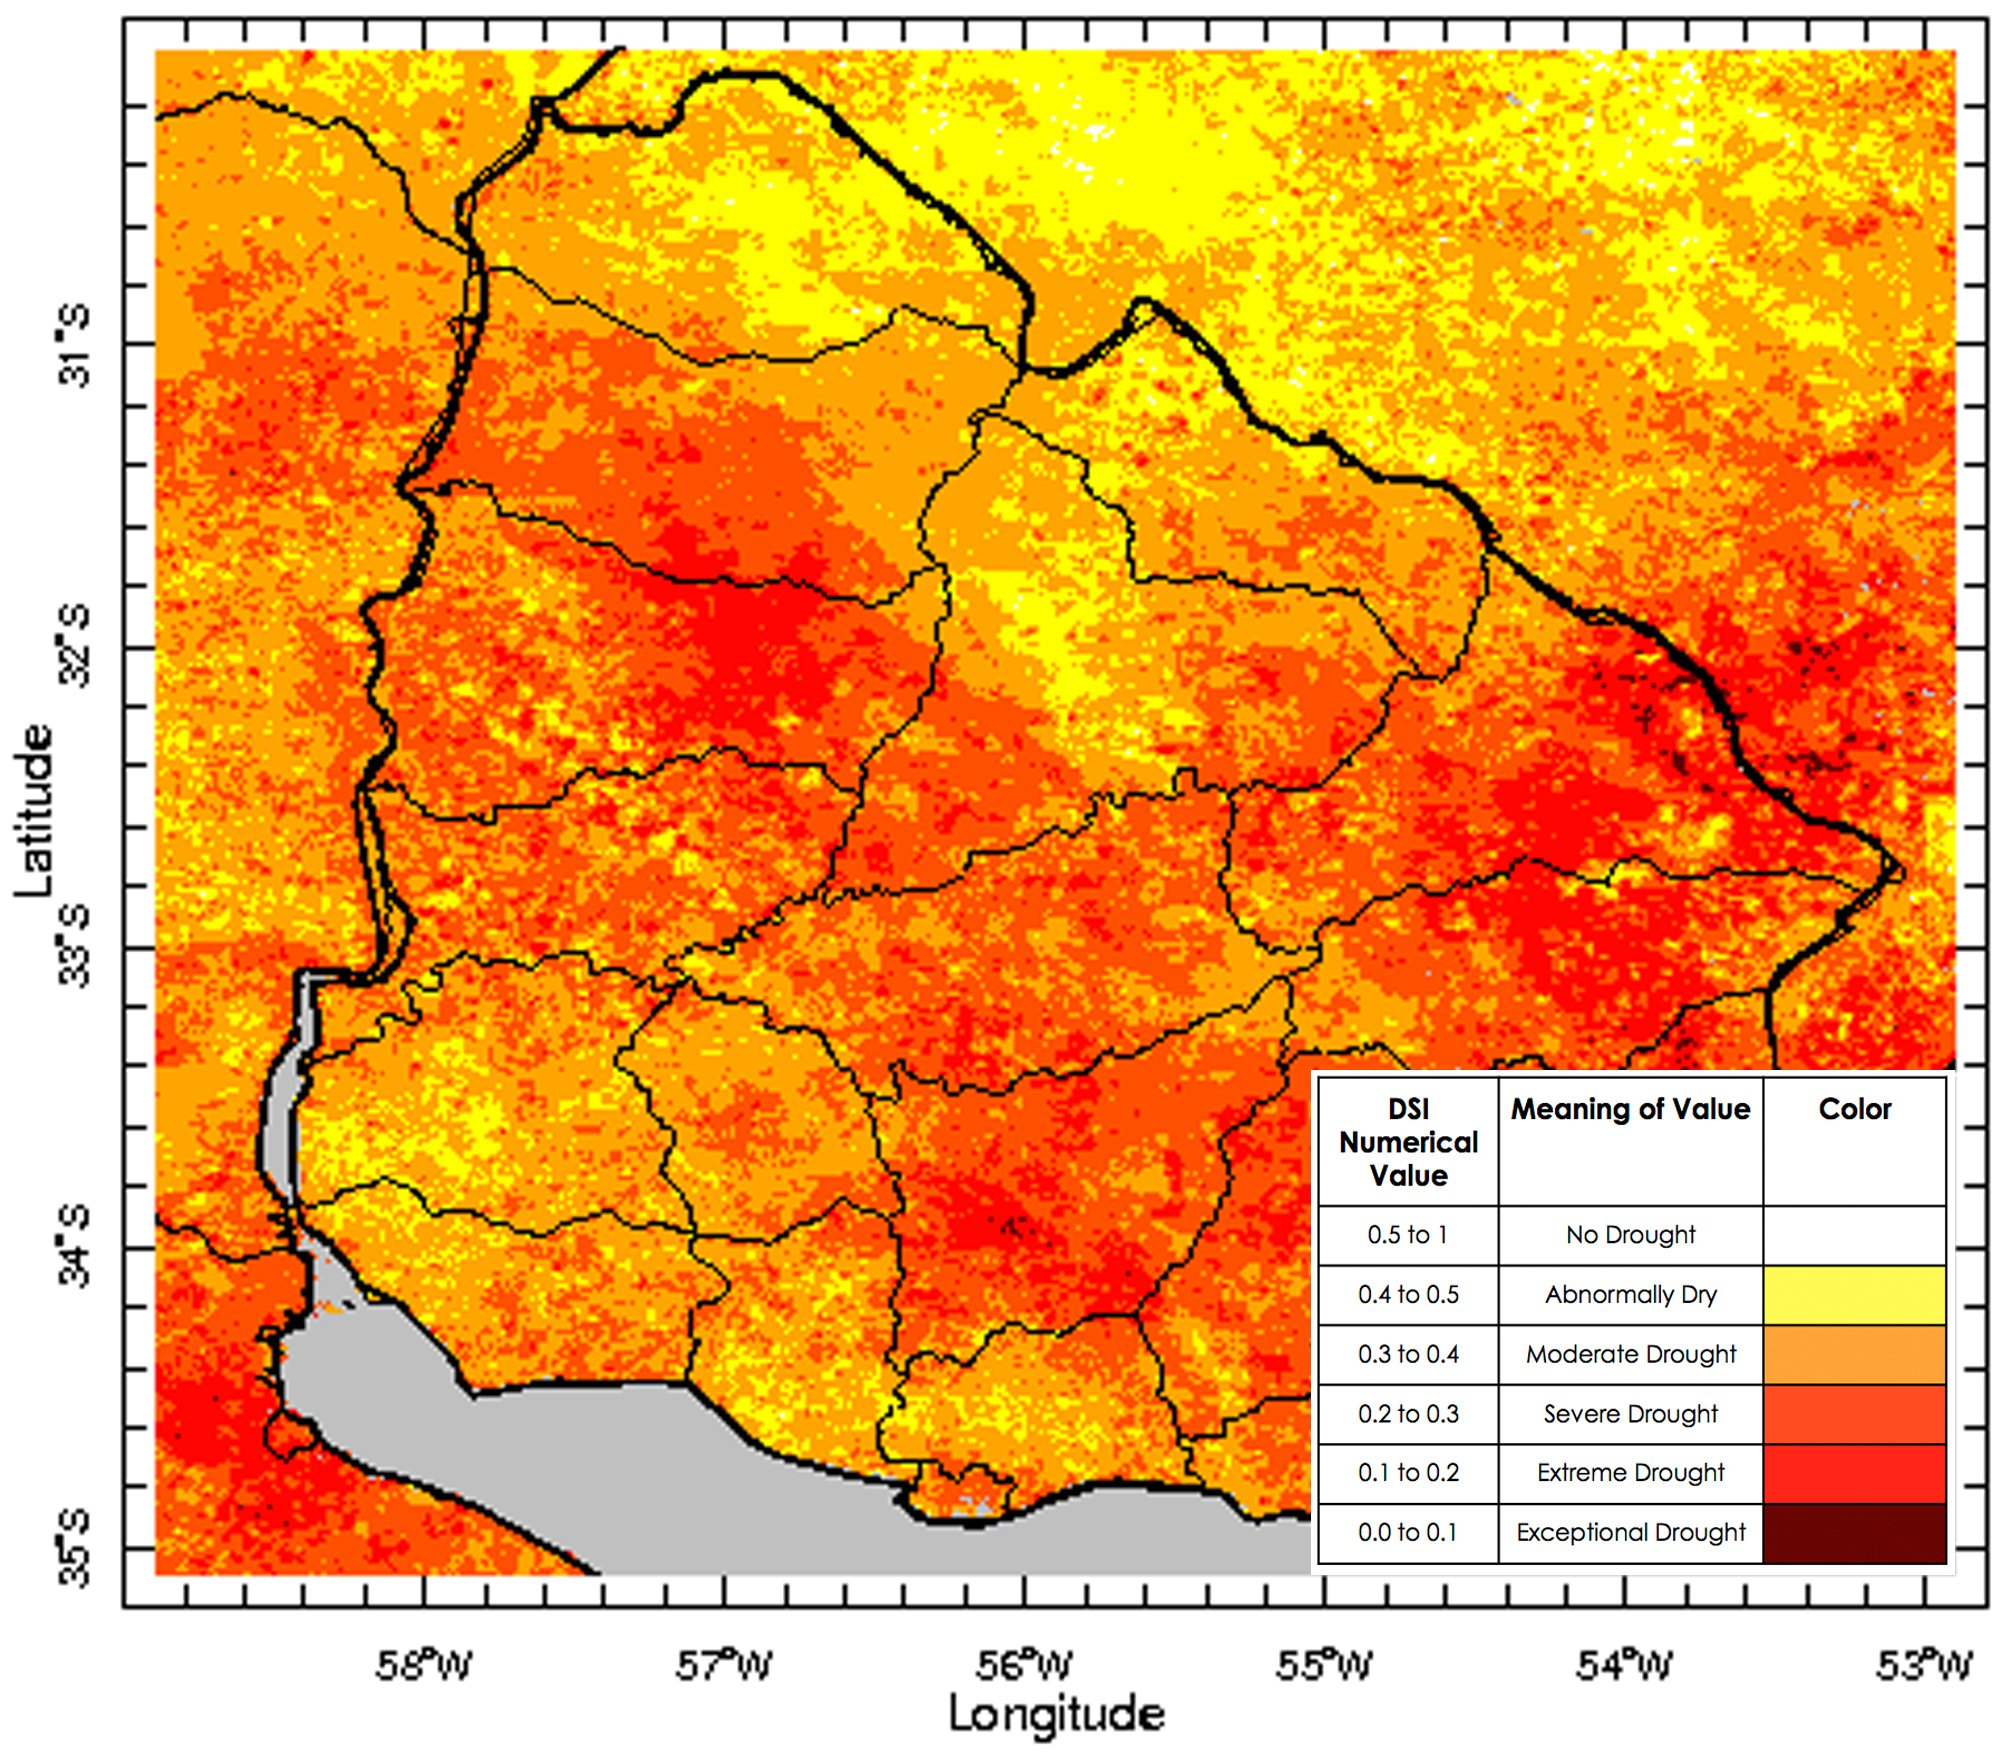 An image of the drought severity index created by the DEVELOP team using MODIS data.